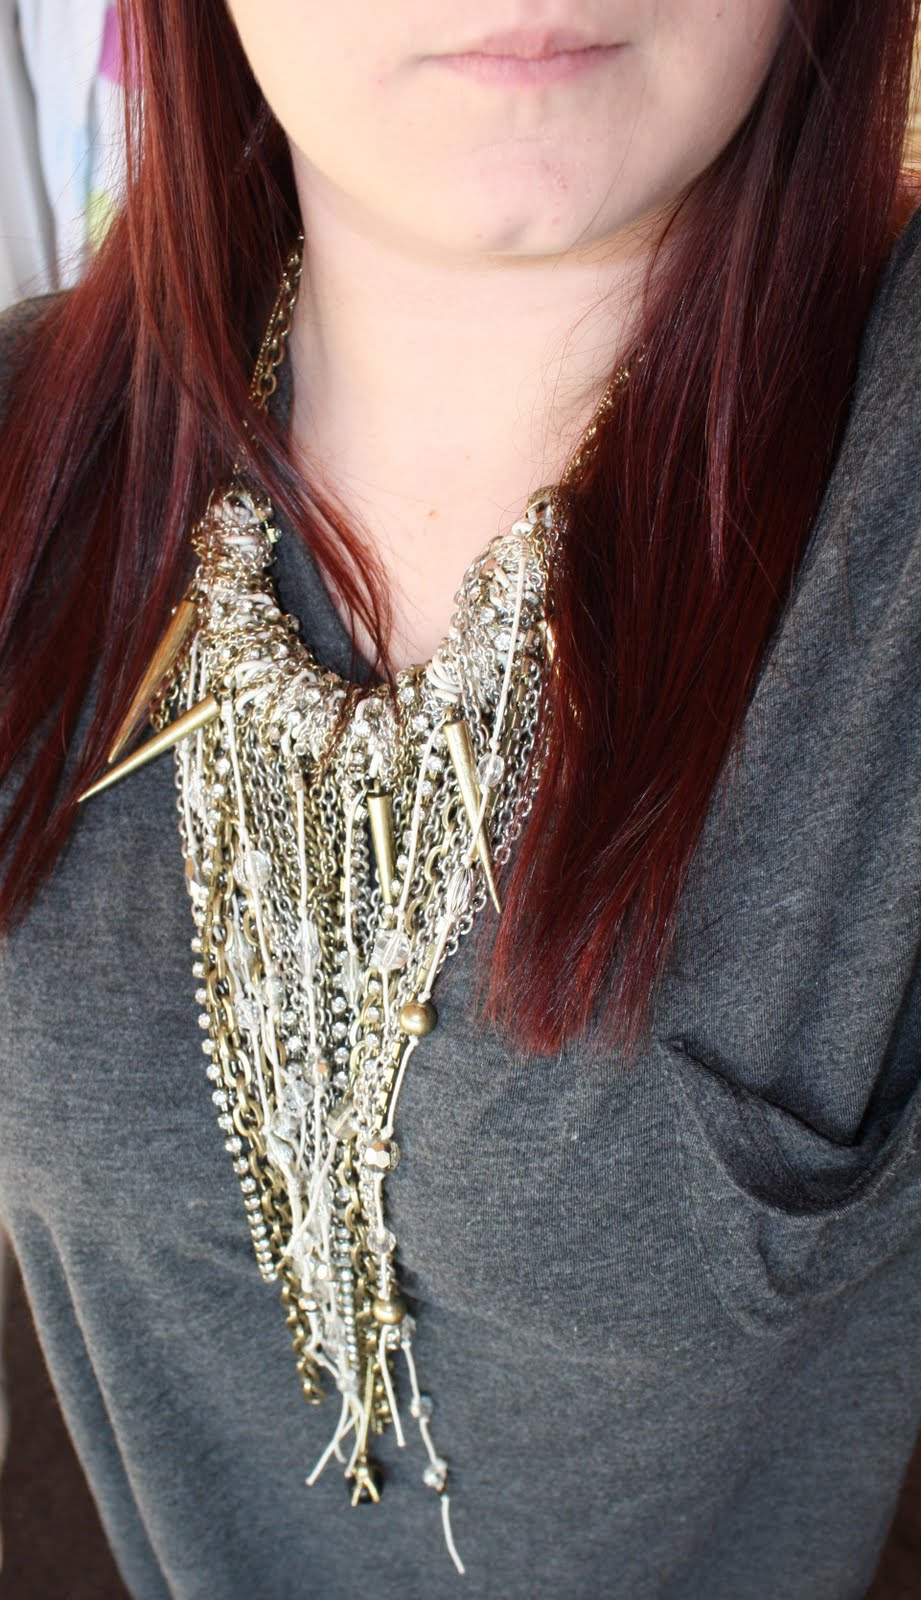 Heart of Solid Gold: In a Heartbeat: Topshop Spike Necklace